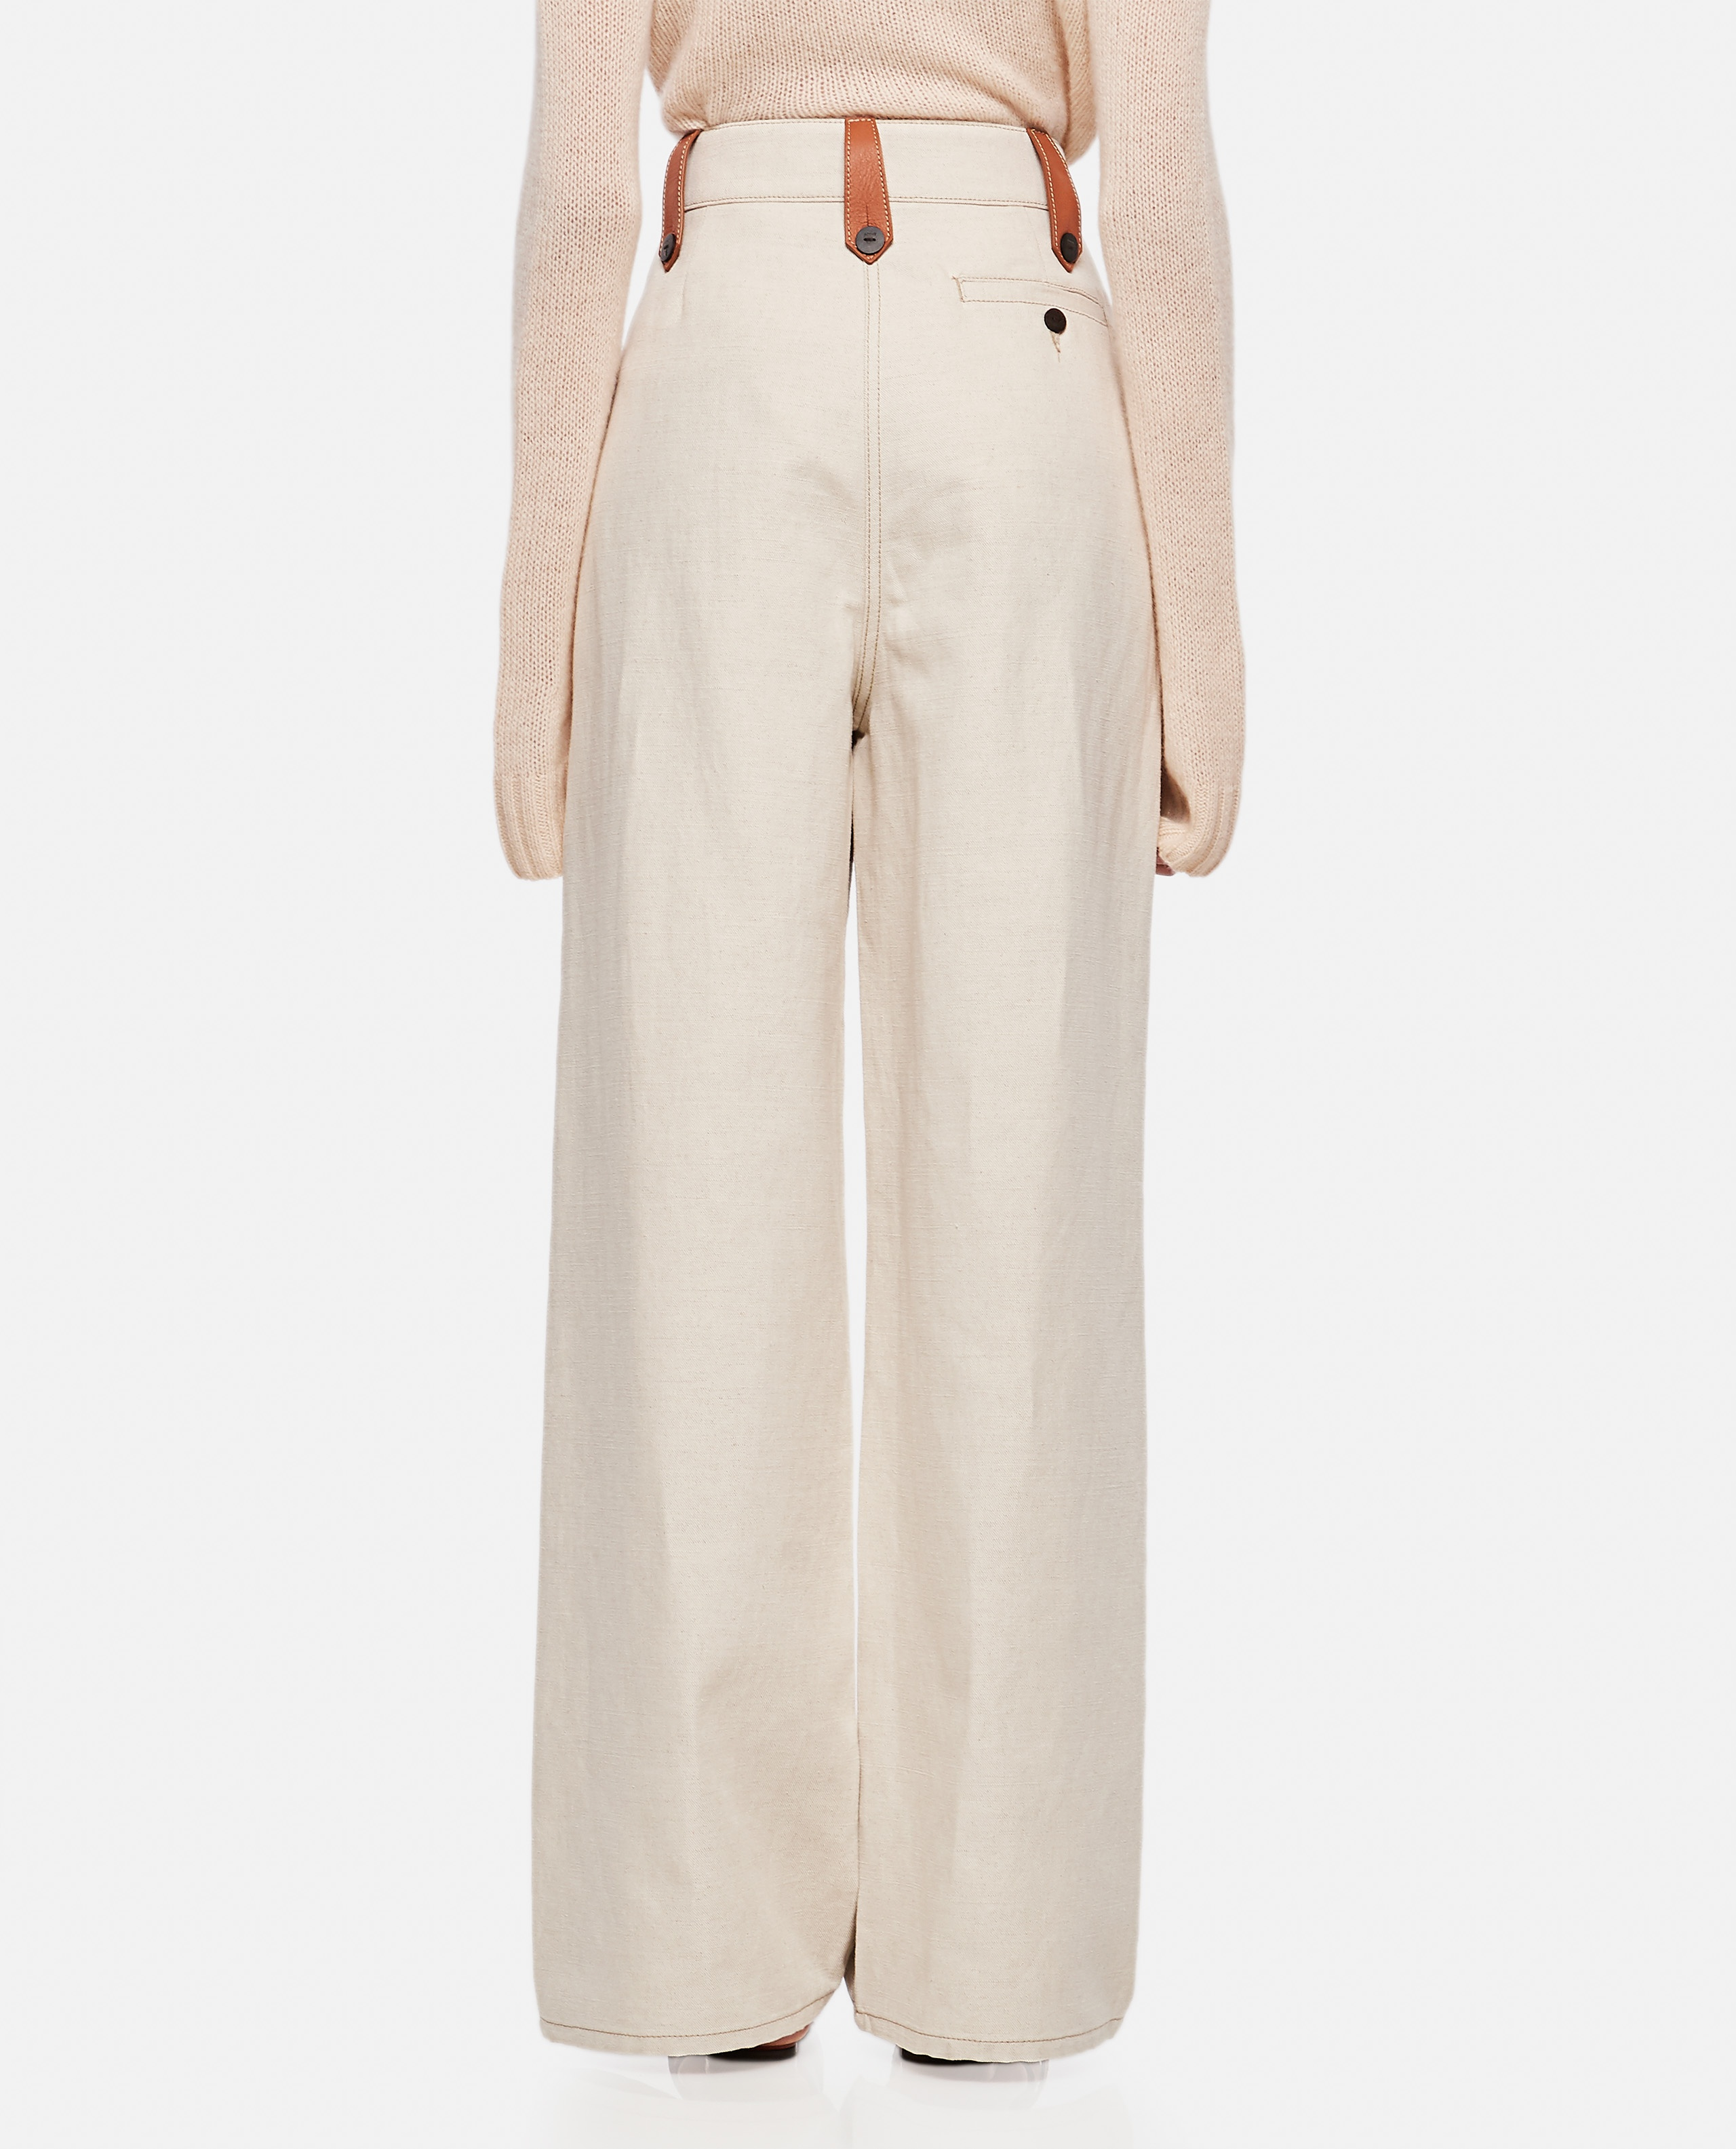 Flared trousers in cotton and linen Women Loewe 000320420046914 3